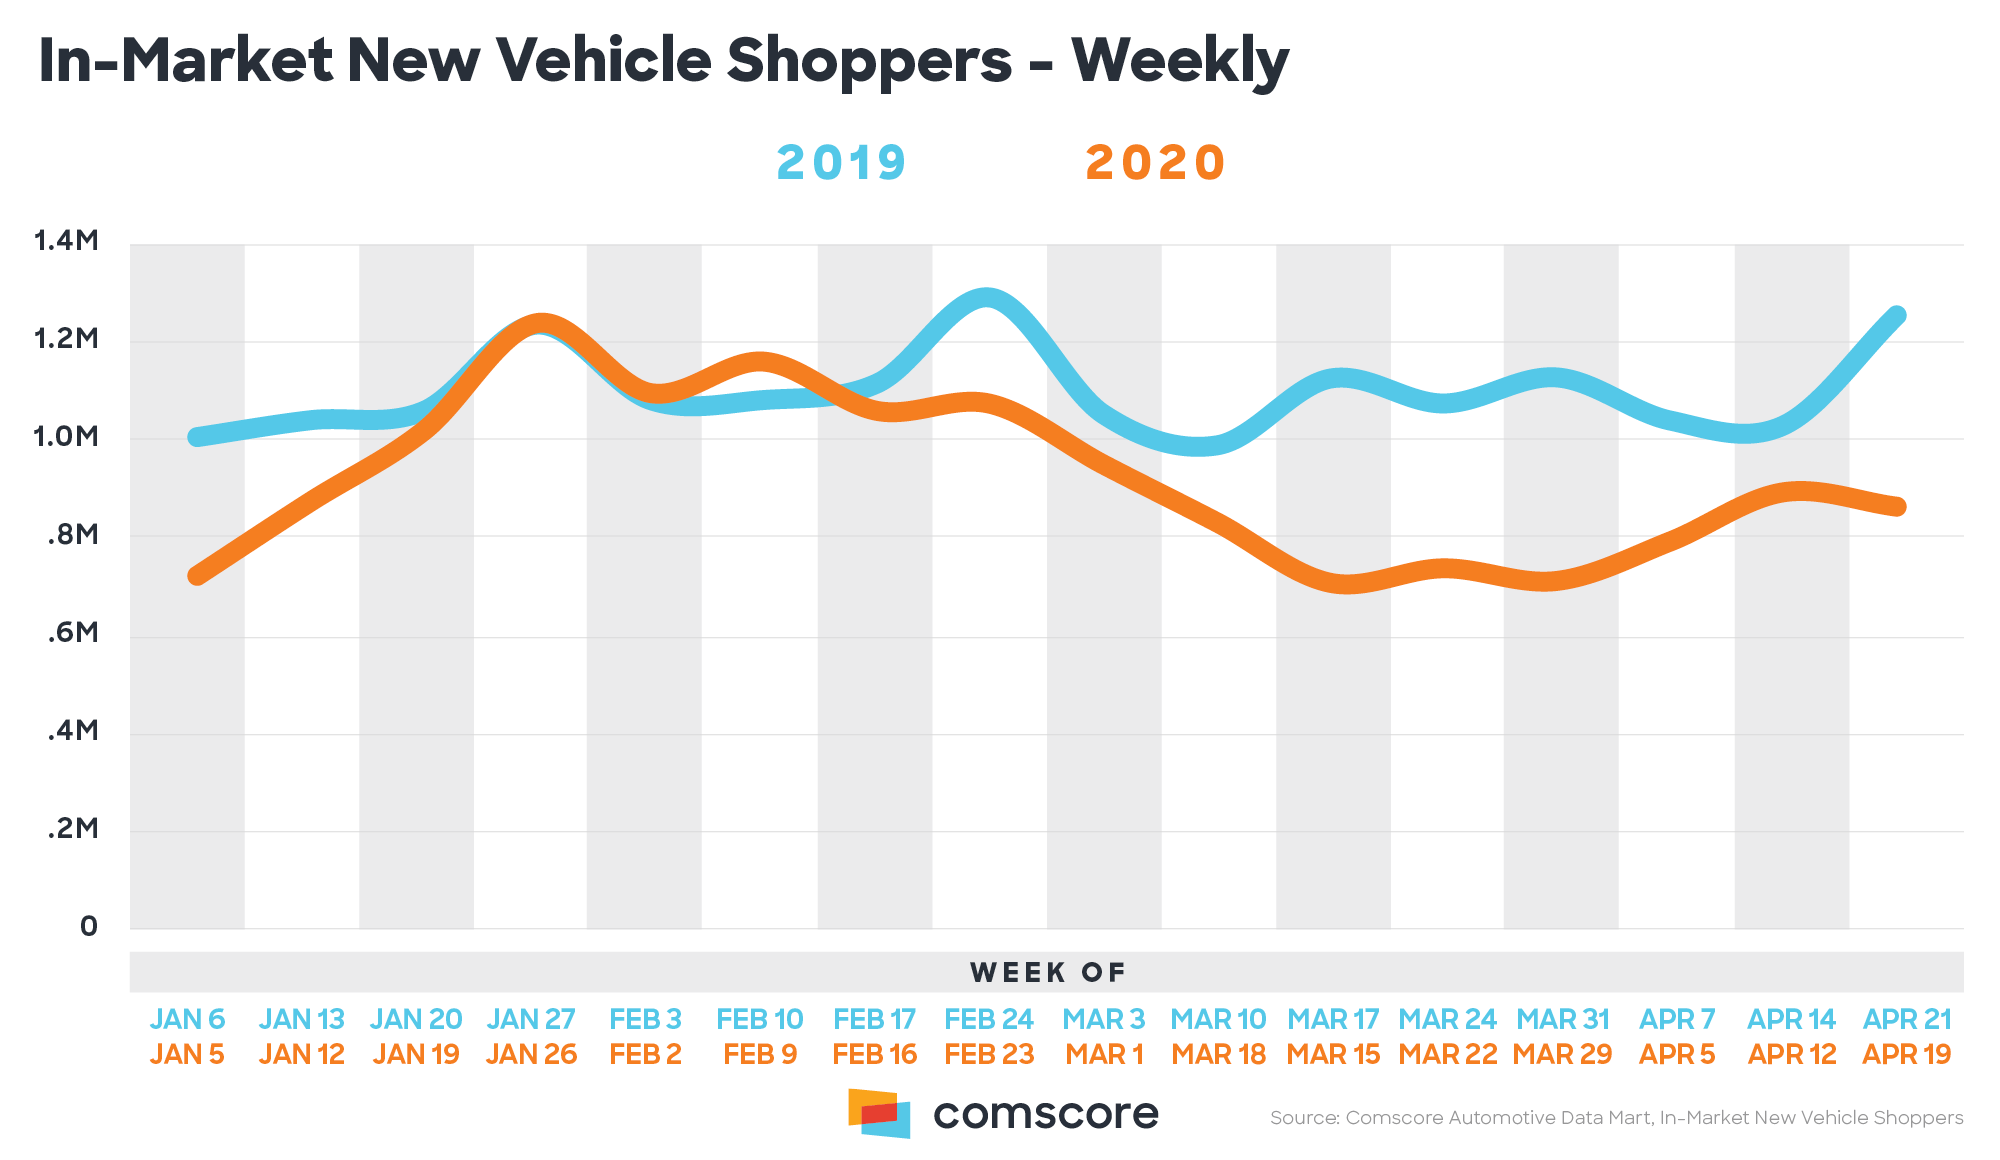 In-Market New Vehicle Shoppers - Weekly